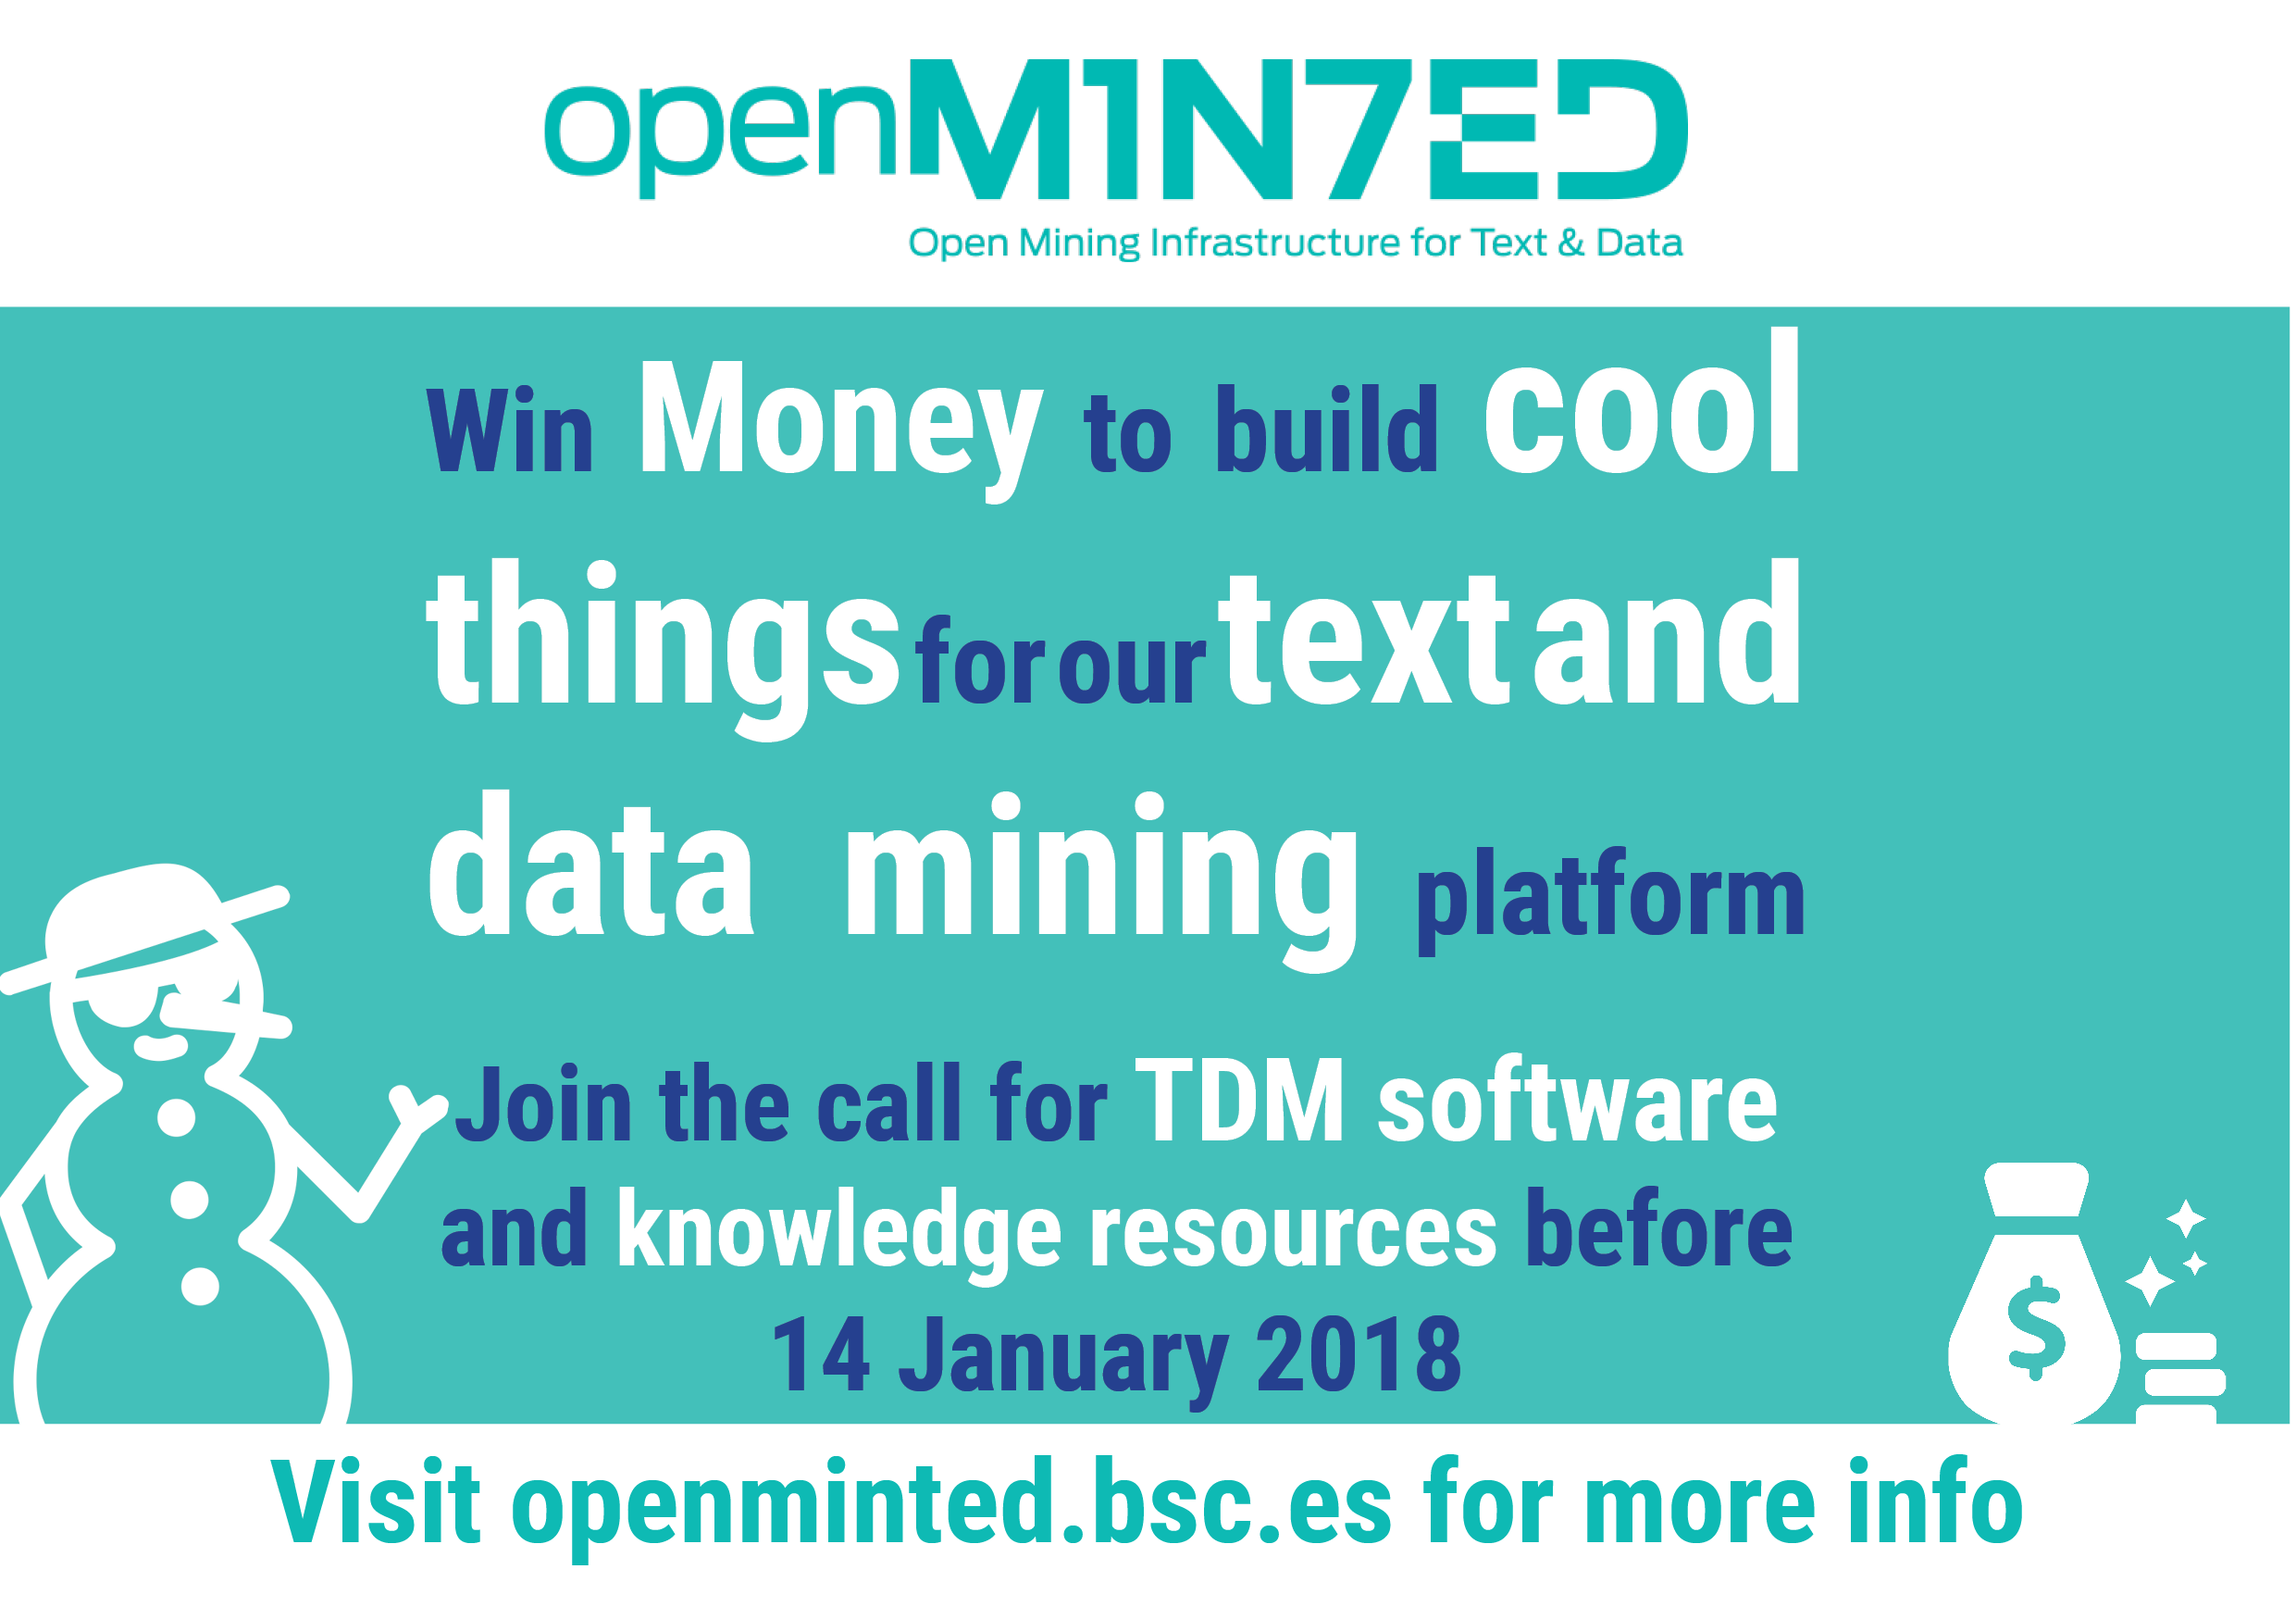 Join the call for TDM software and Knowledge Resources